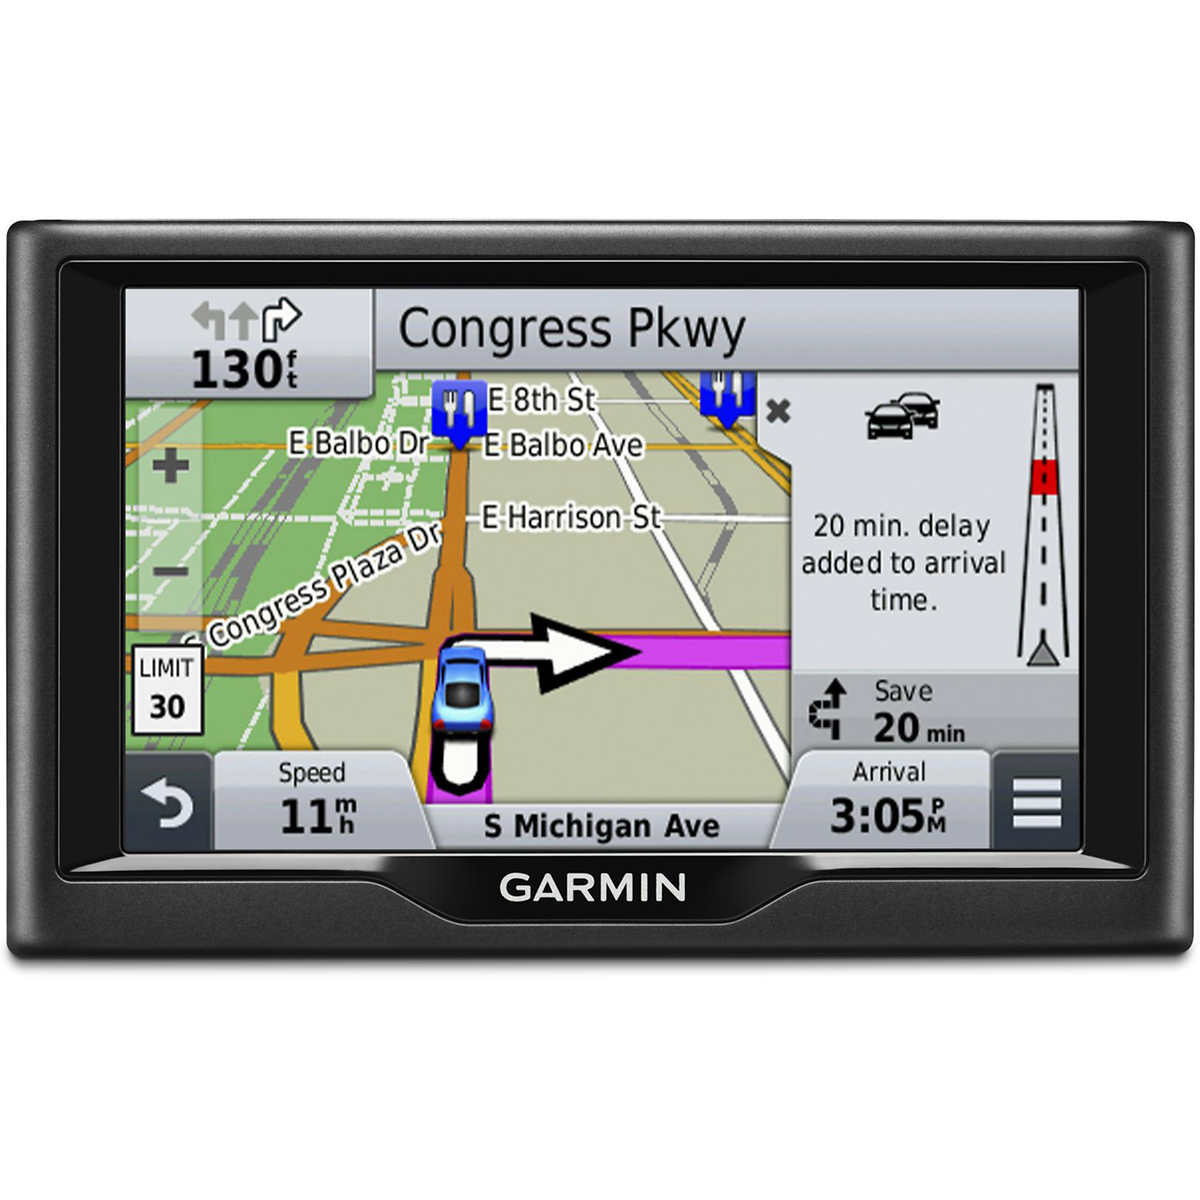 GPS Costco - Gps with us and europe maps